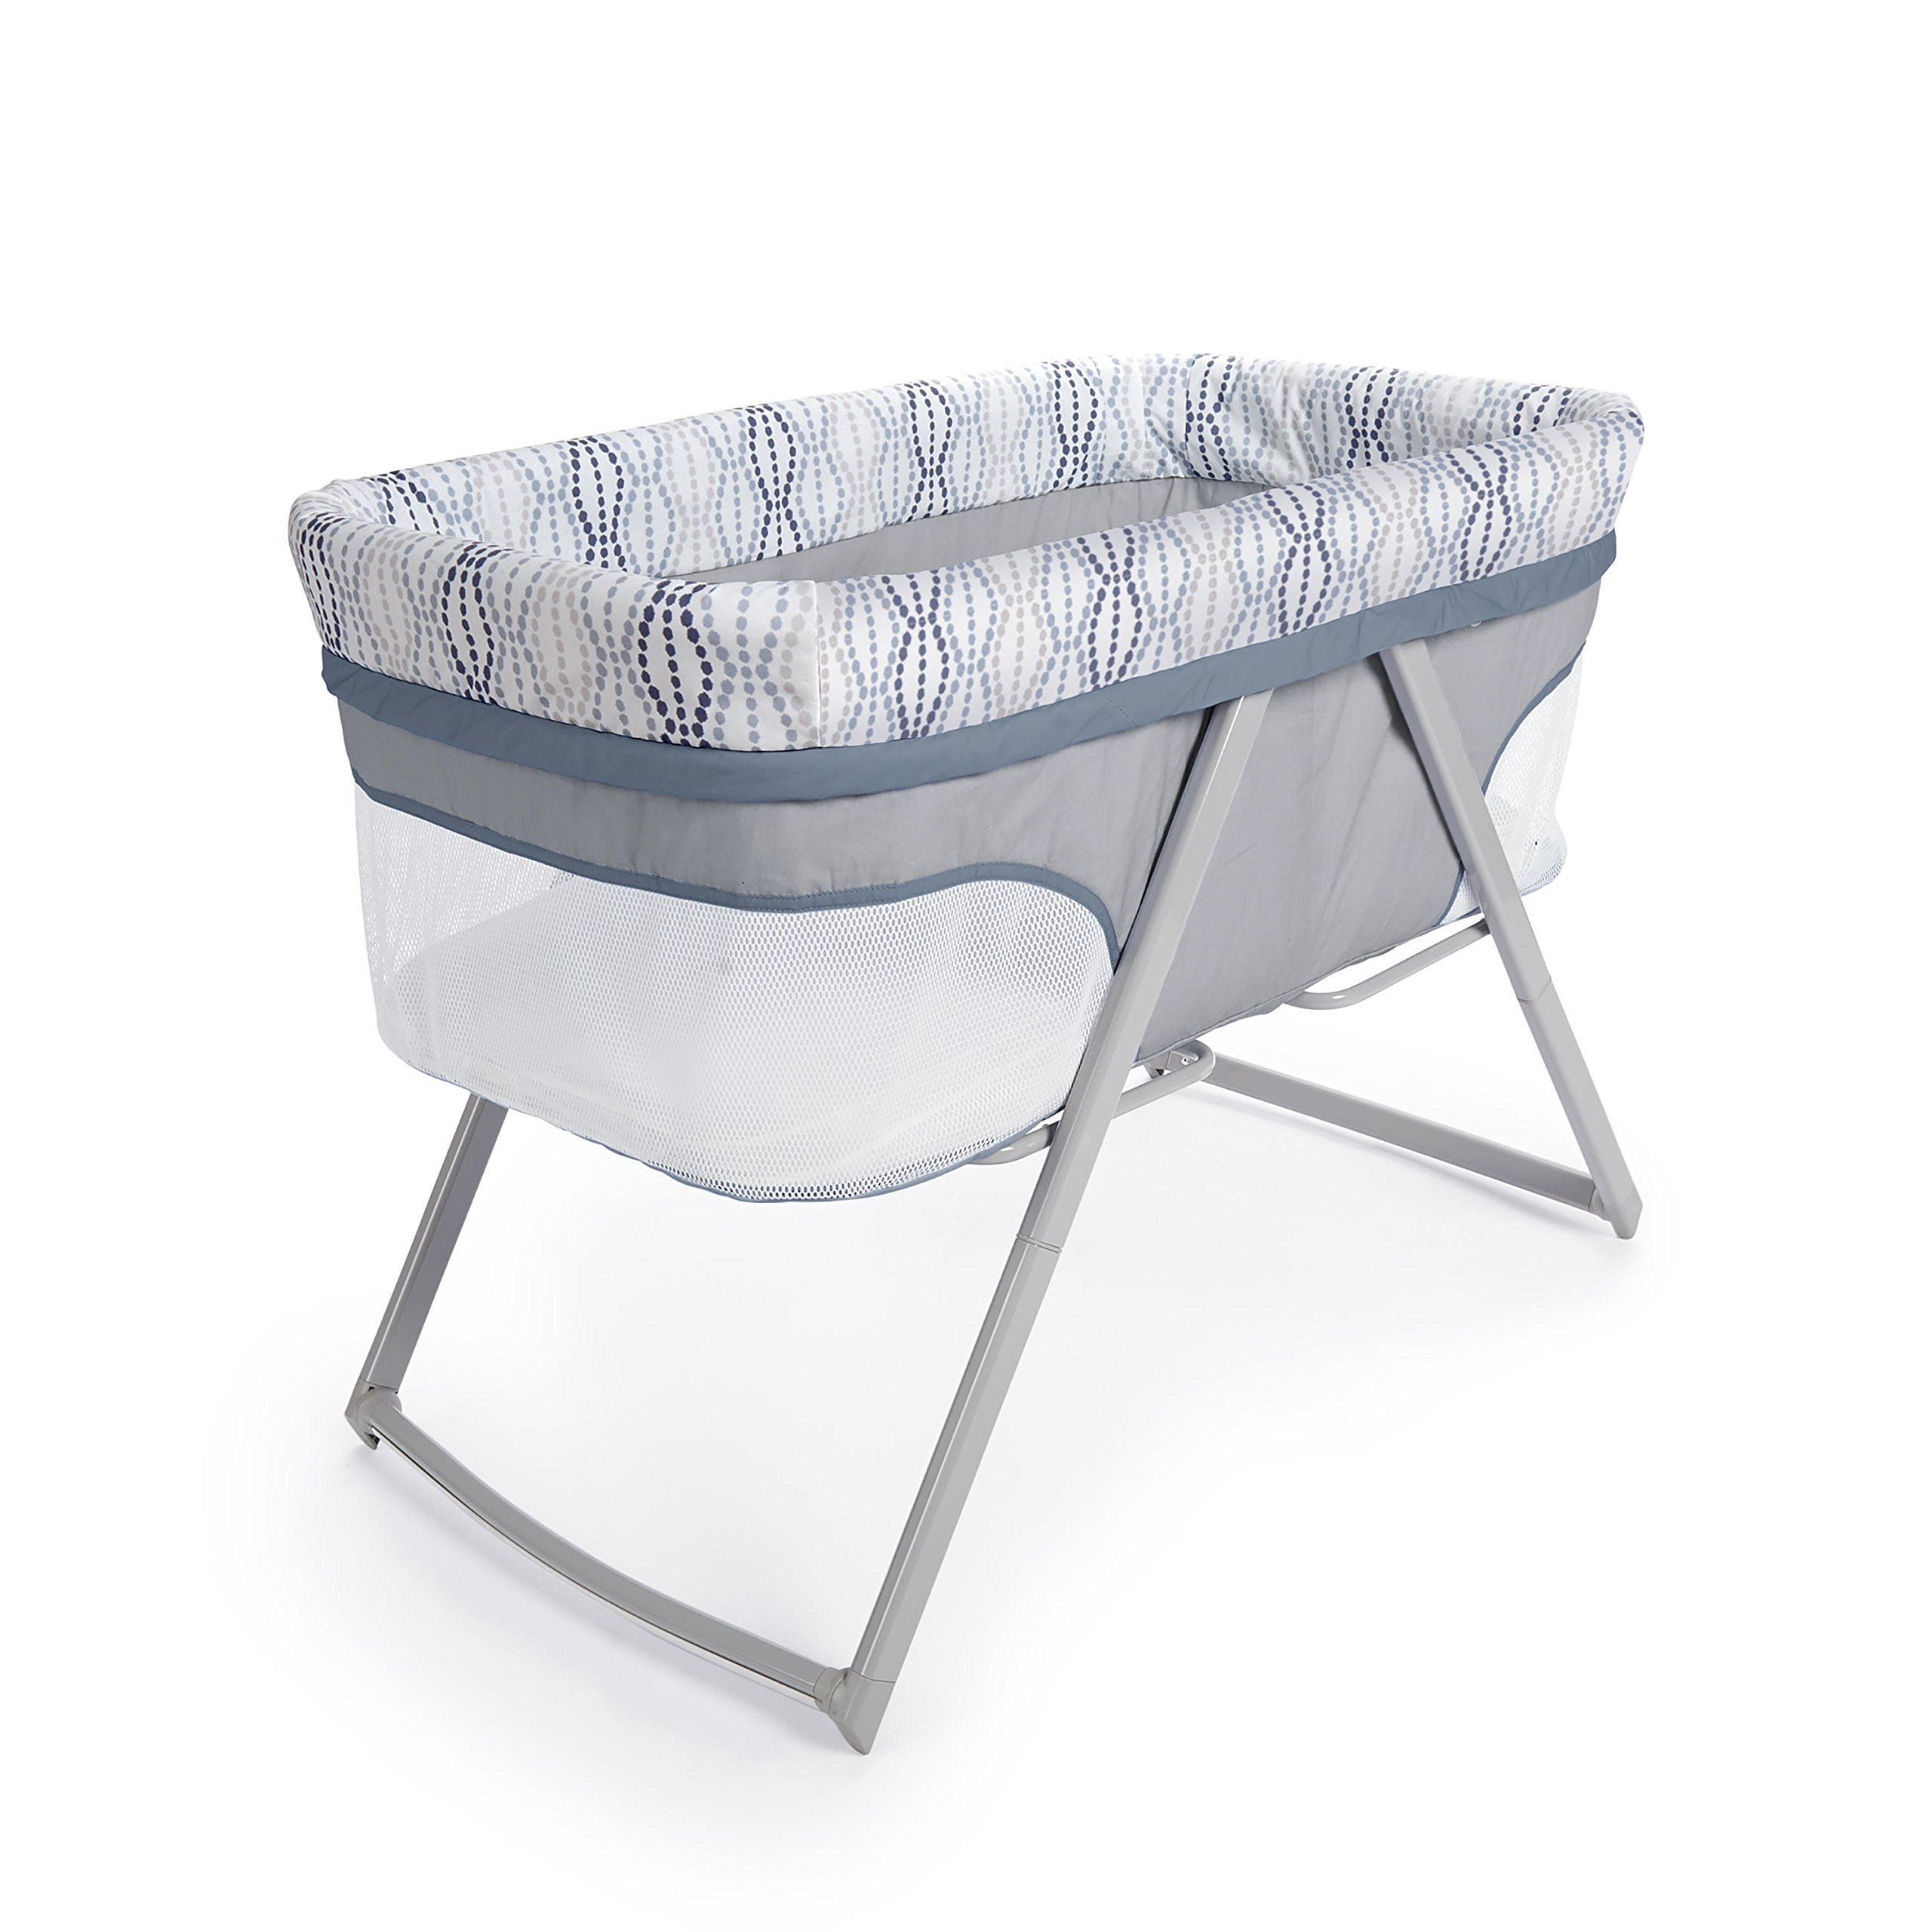 Ingenuity Foldaway Rocking Bassinet - Fletcher - Portable Folding Rocking Bassinet